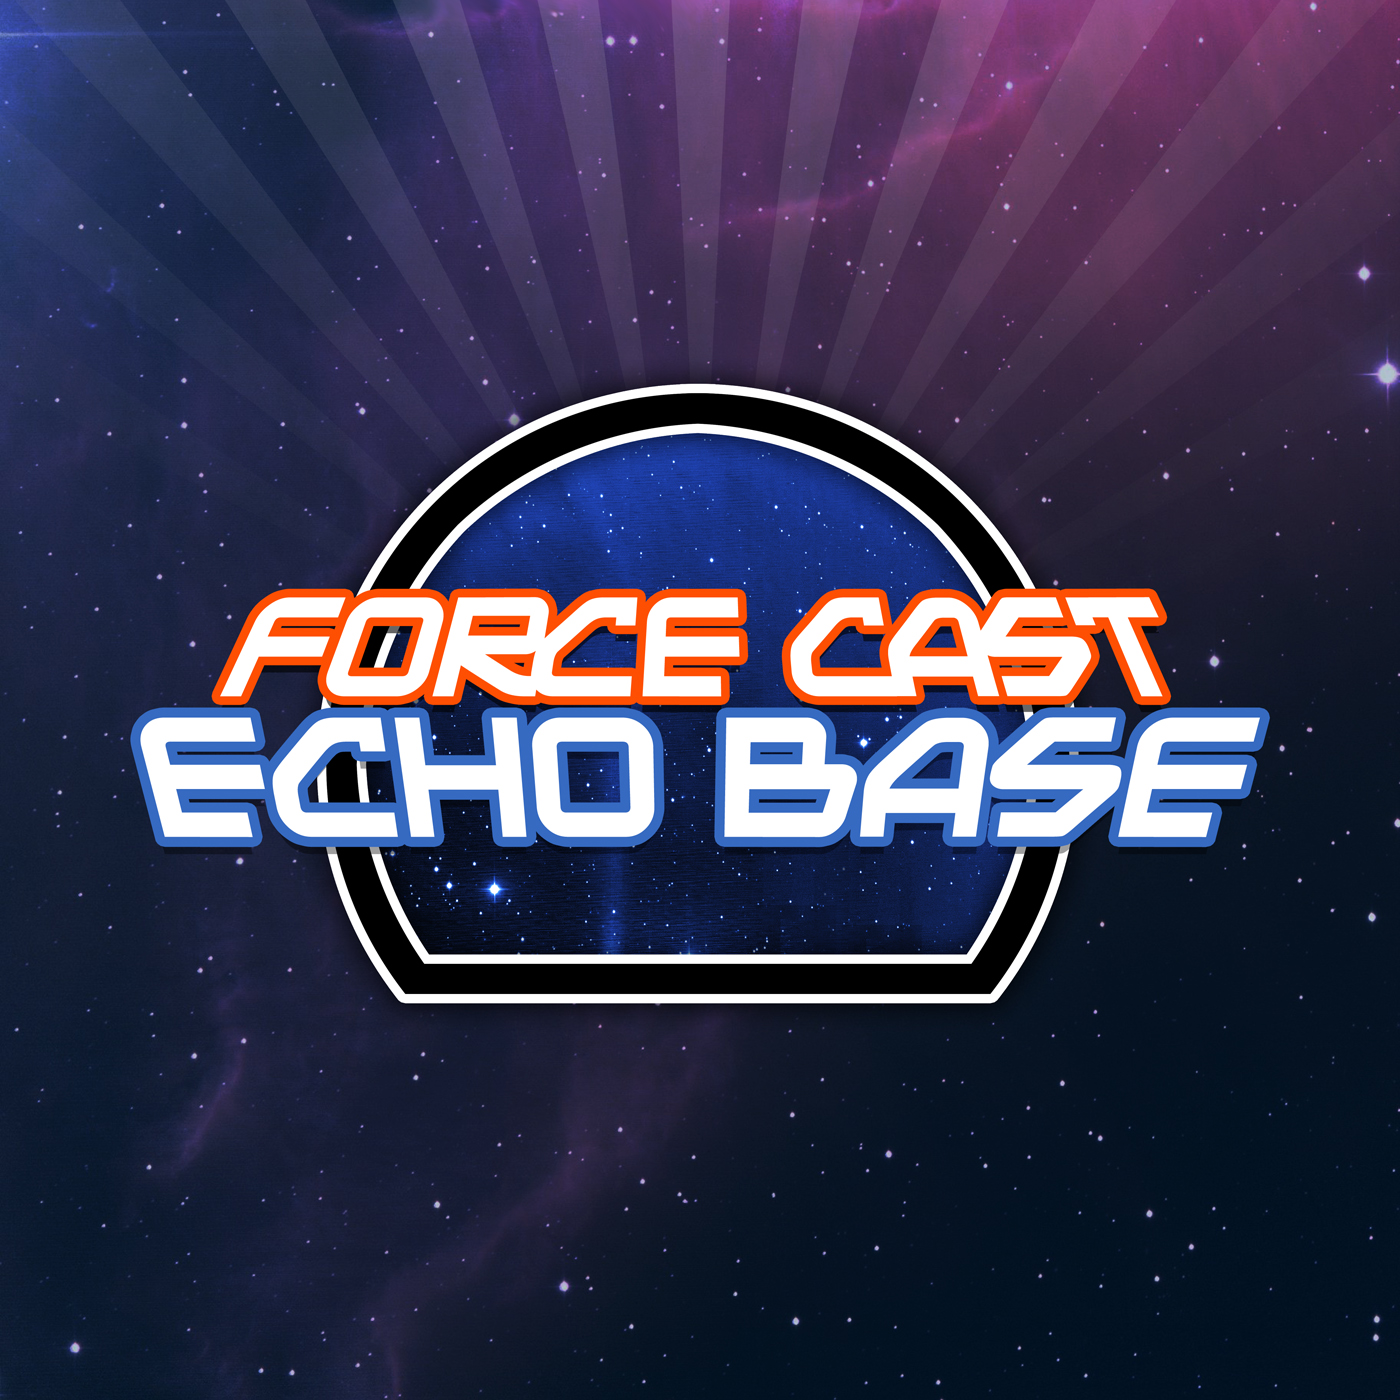 Echo Base (presented by The ForceCast)